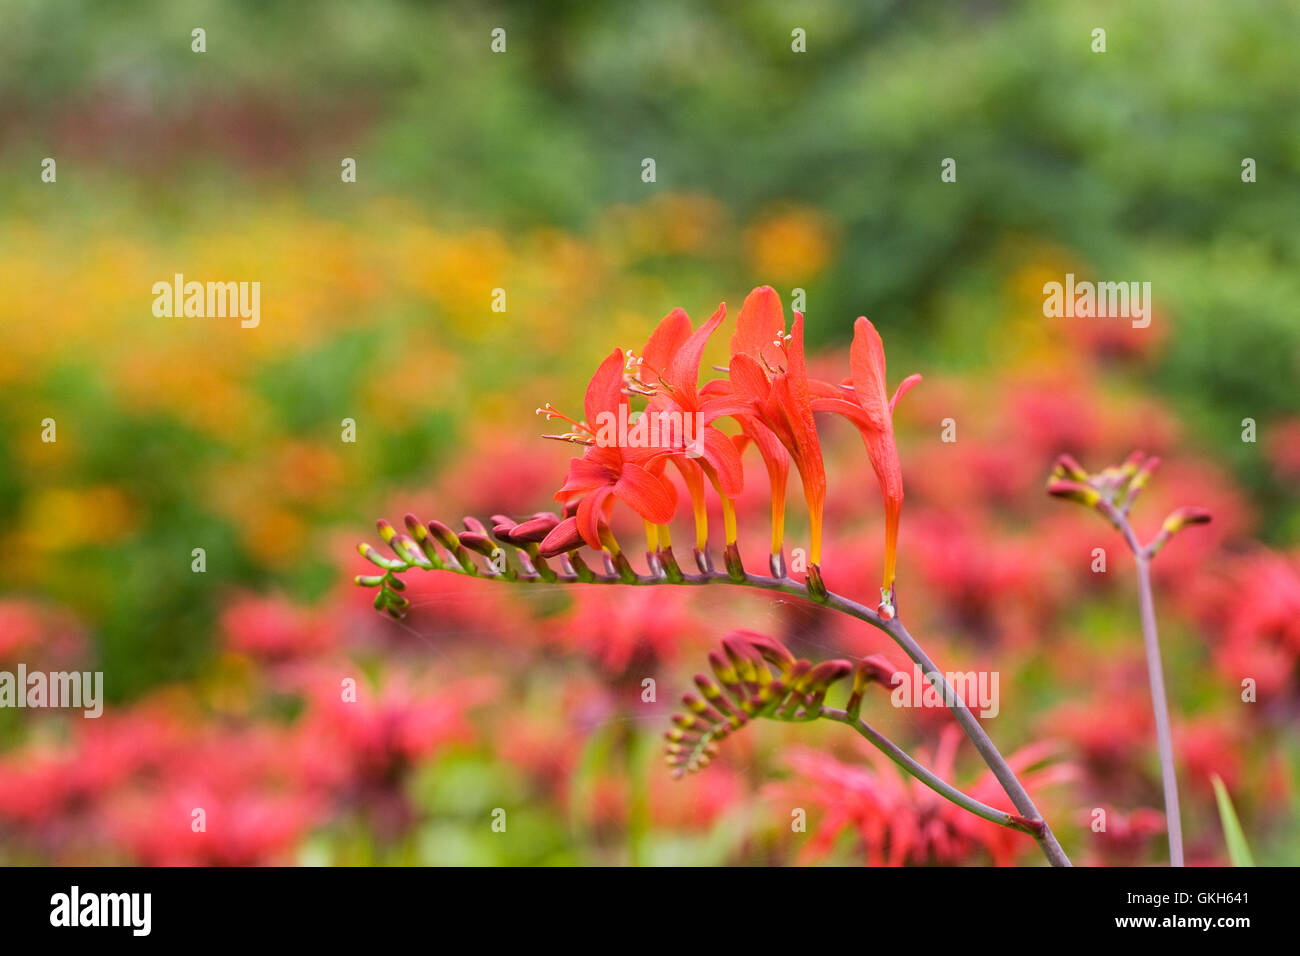 Crocosmia 'Lucifer' flowers in an herbaceous border. Stock Photo